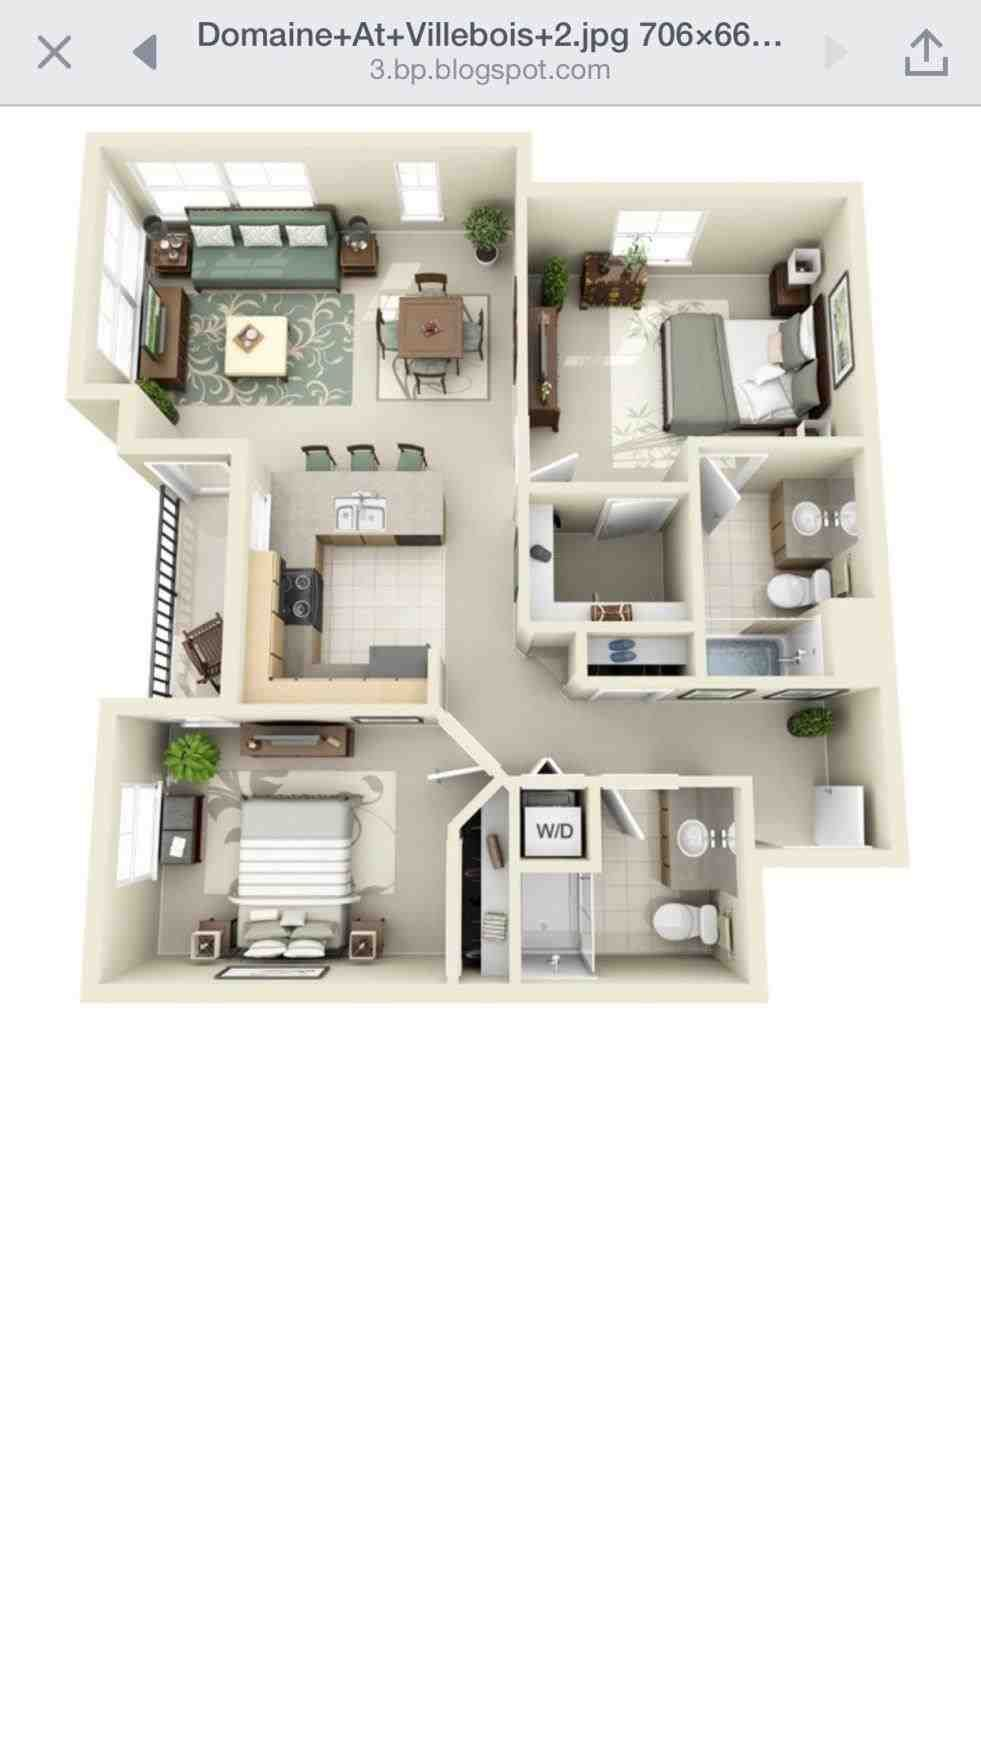 2 Bedroom Apartment Floor Plan 3d One Bedroom Apartments 3d Floor Plan Studi 2 Bedroom Apartment Floor Plan Studio Apartment Floor Plans Apartment Floor Plan